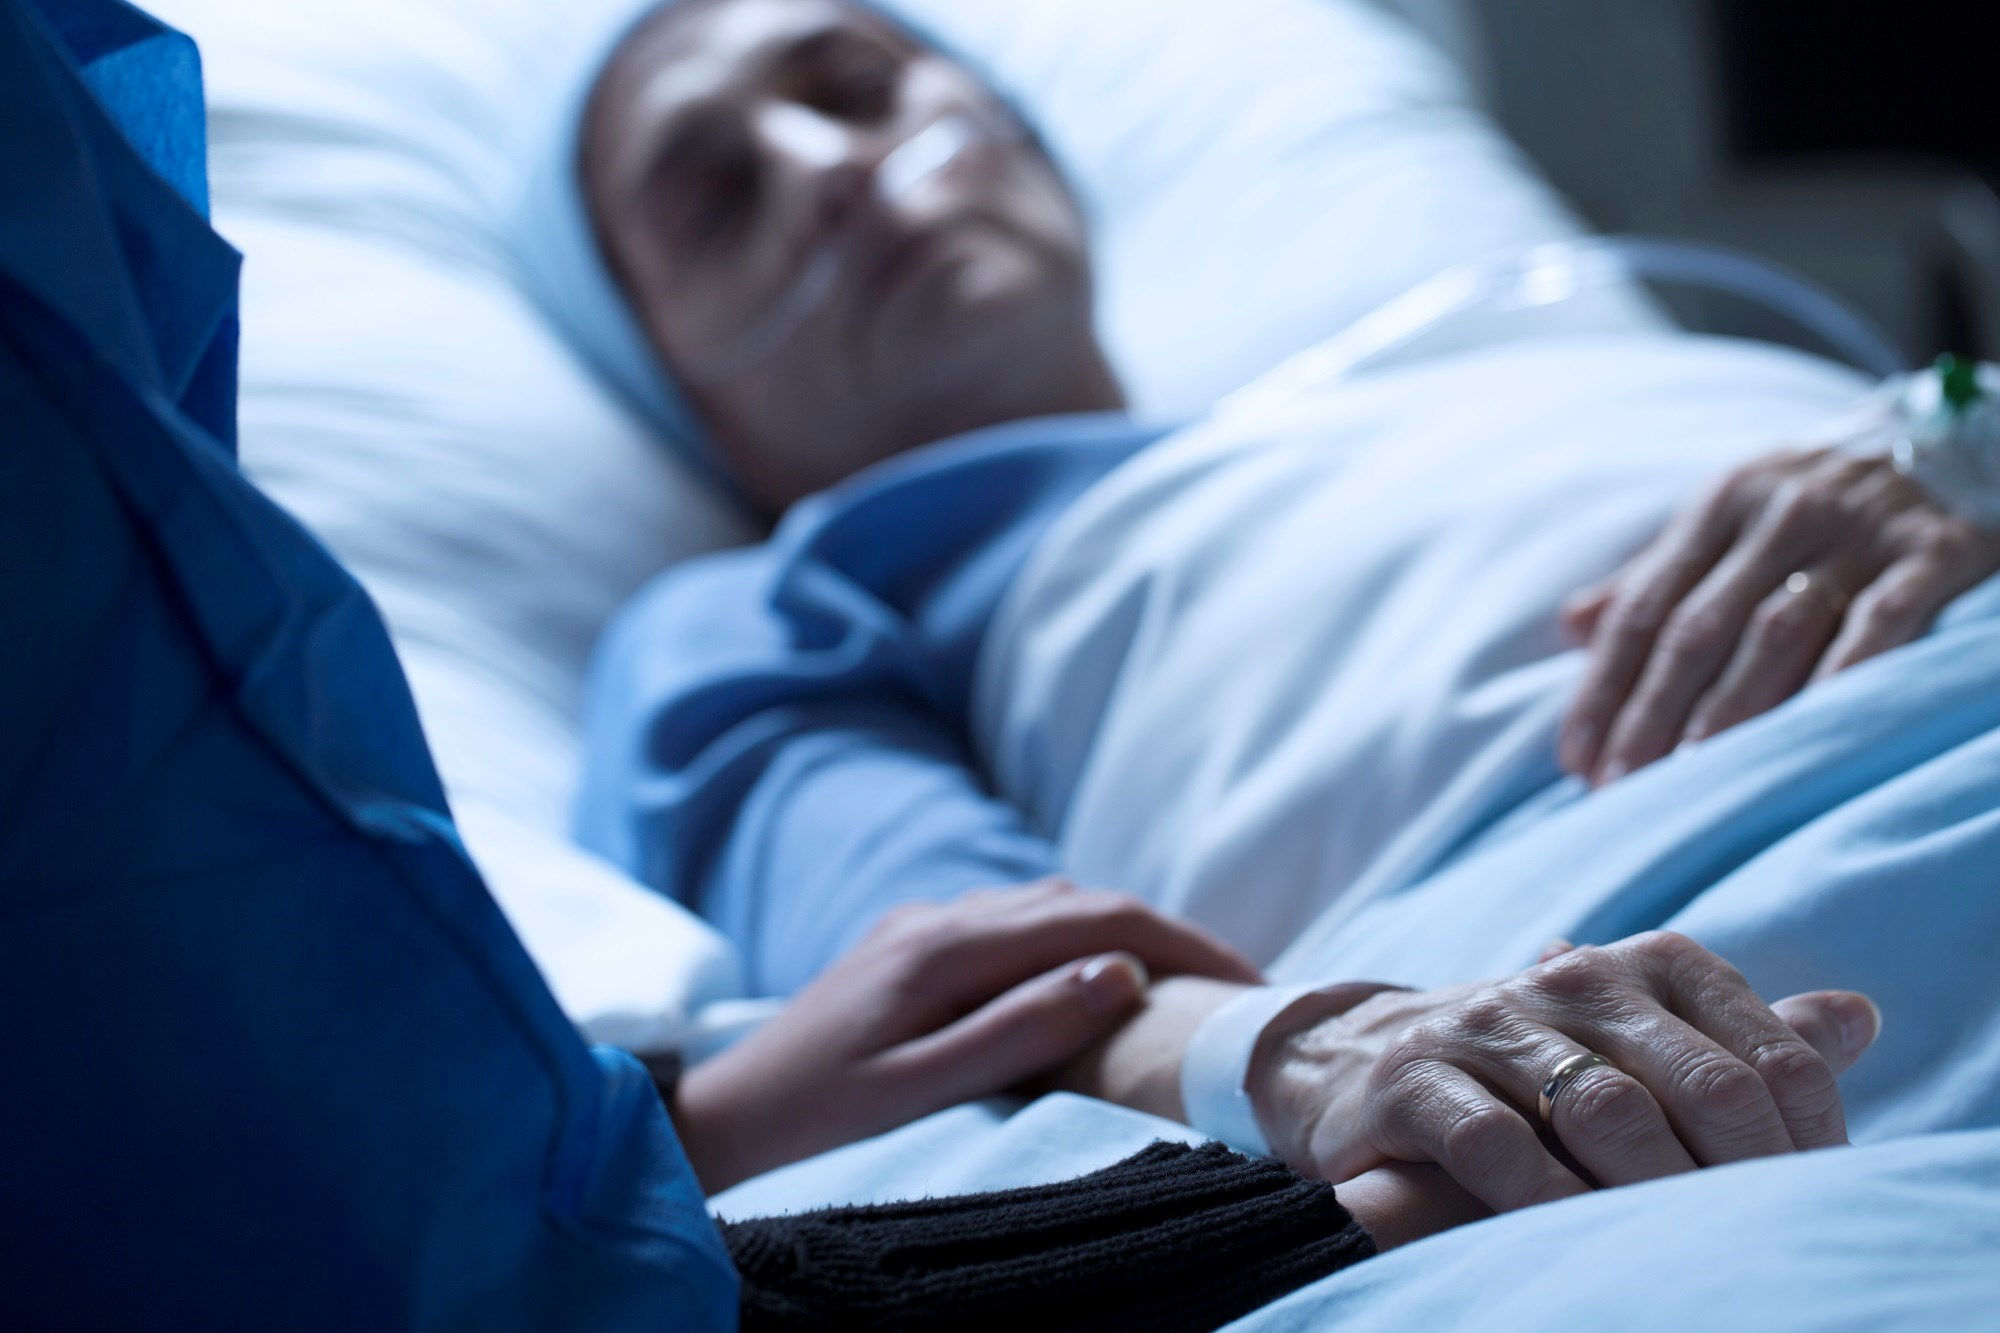 Bereavement Service May Reduce Complaints and Litigation After Patient Deaths